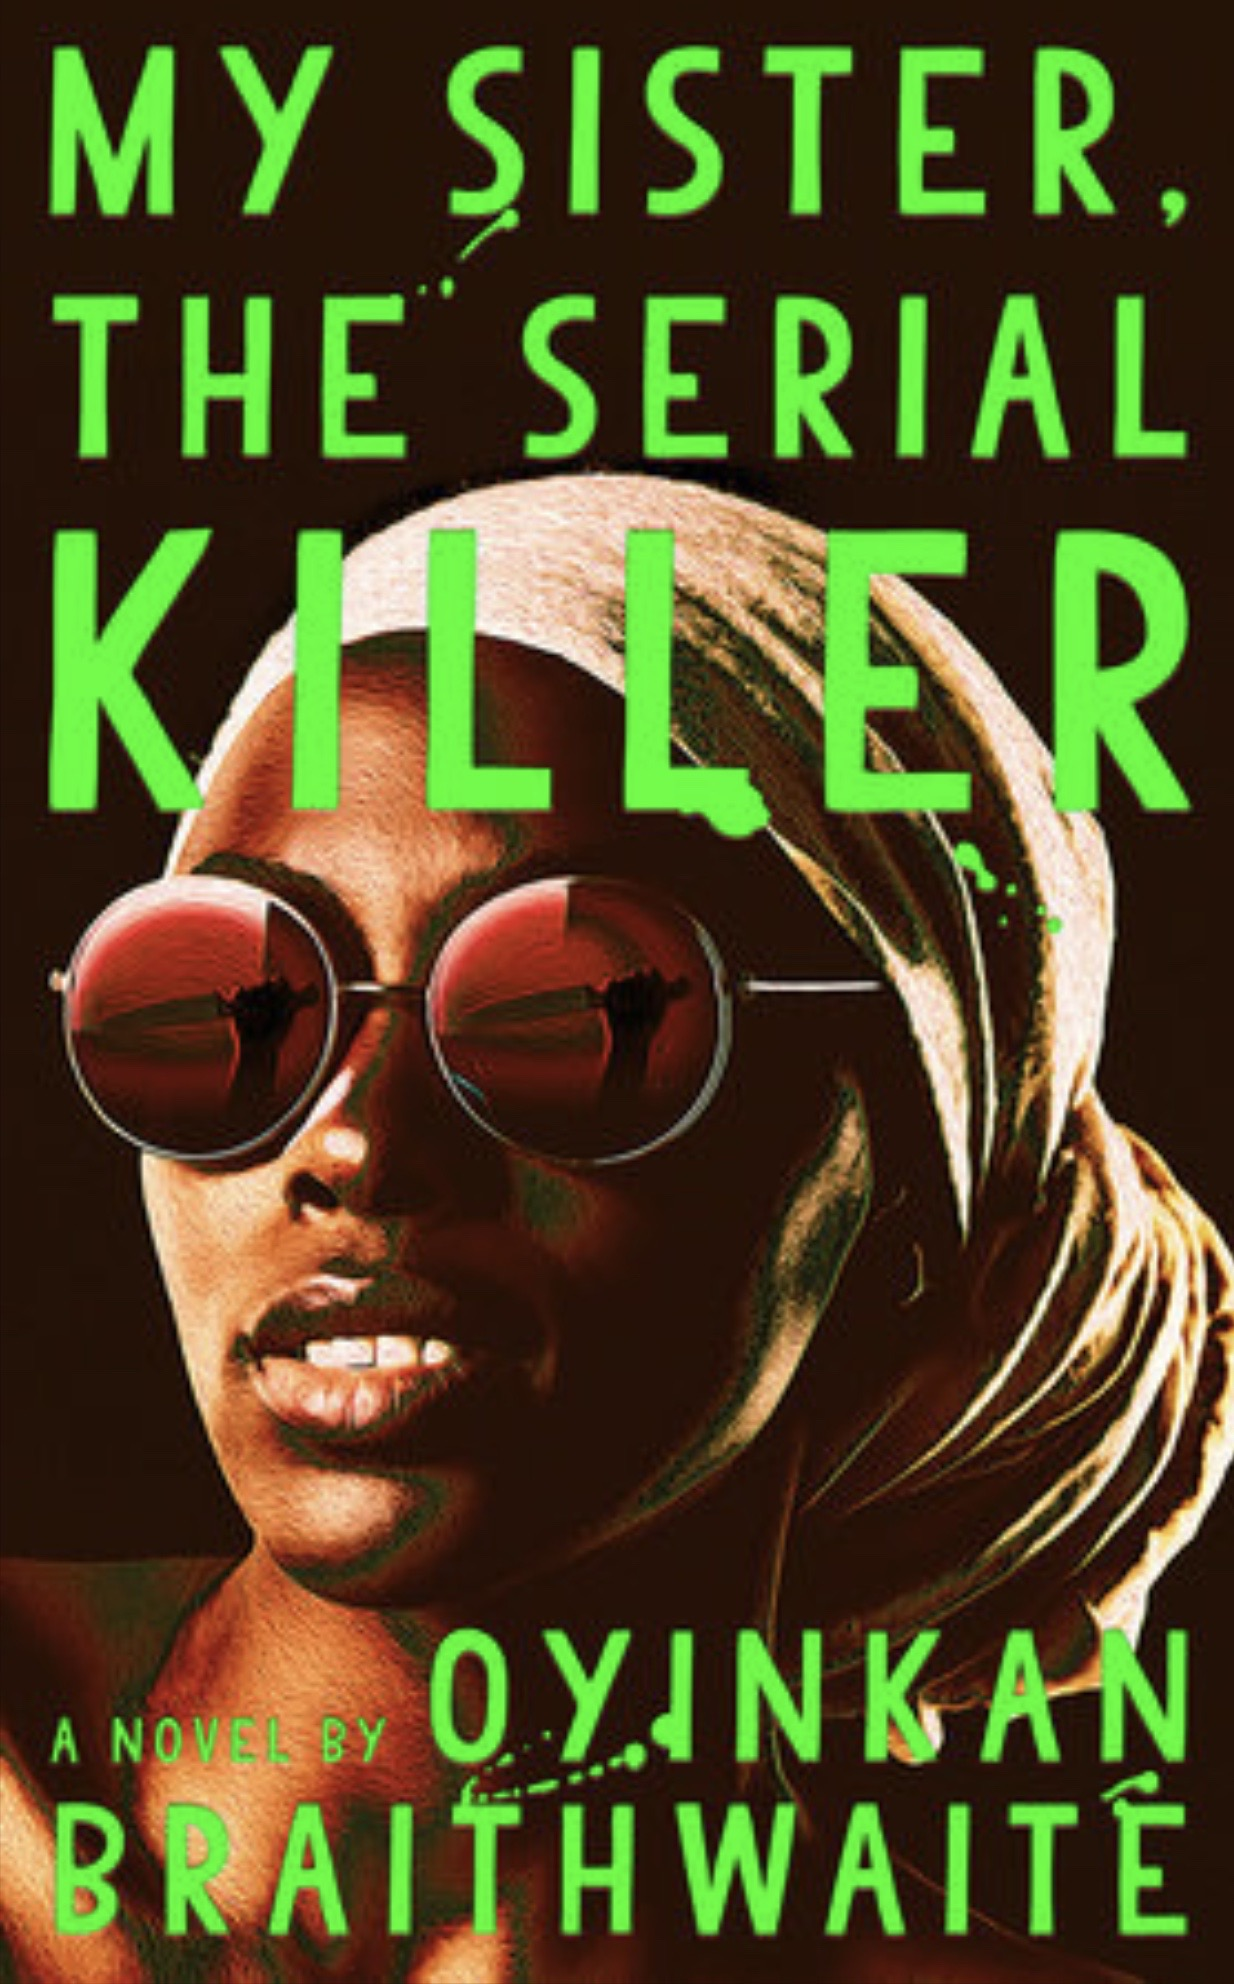 My Sister, the Serial Killer – Book Review